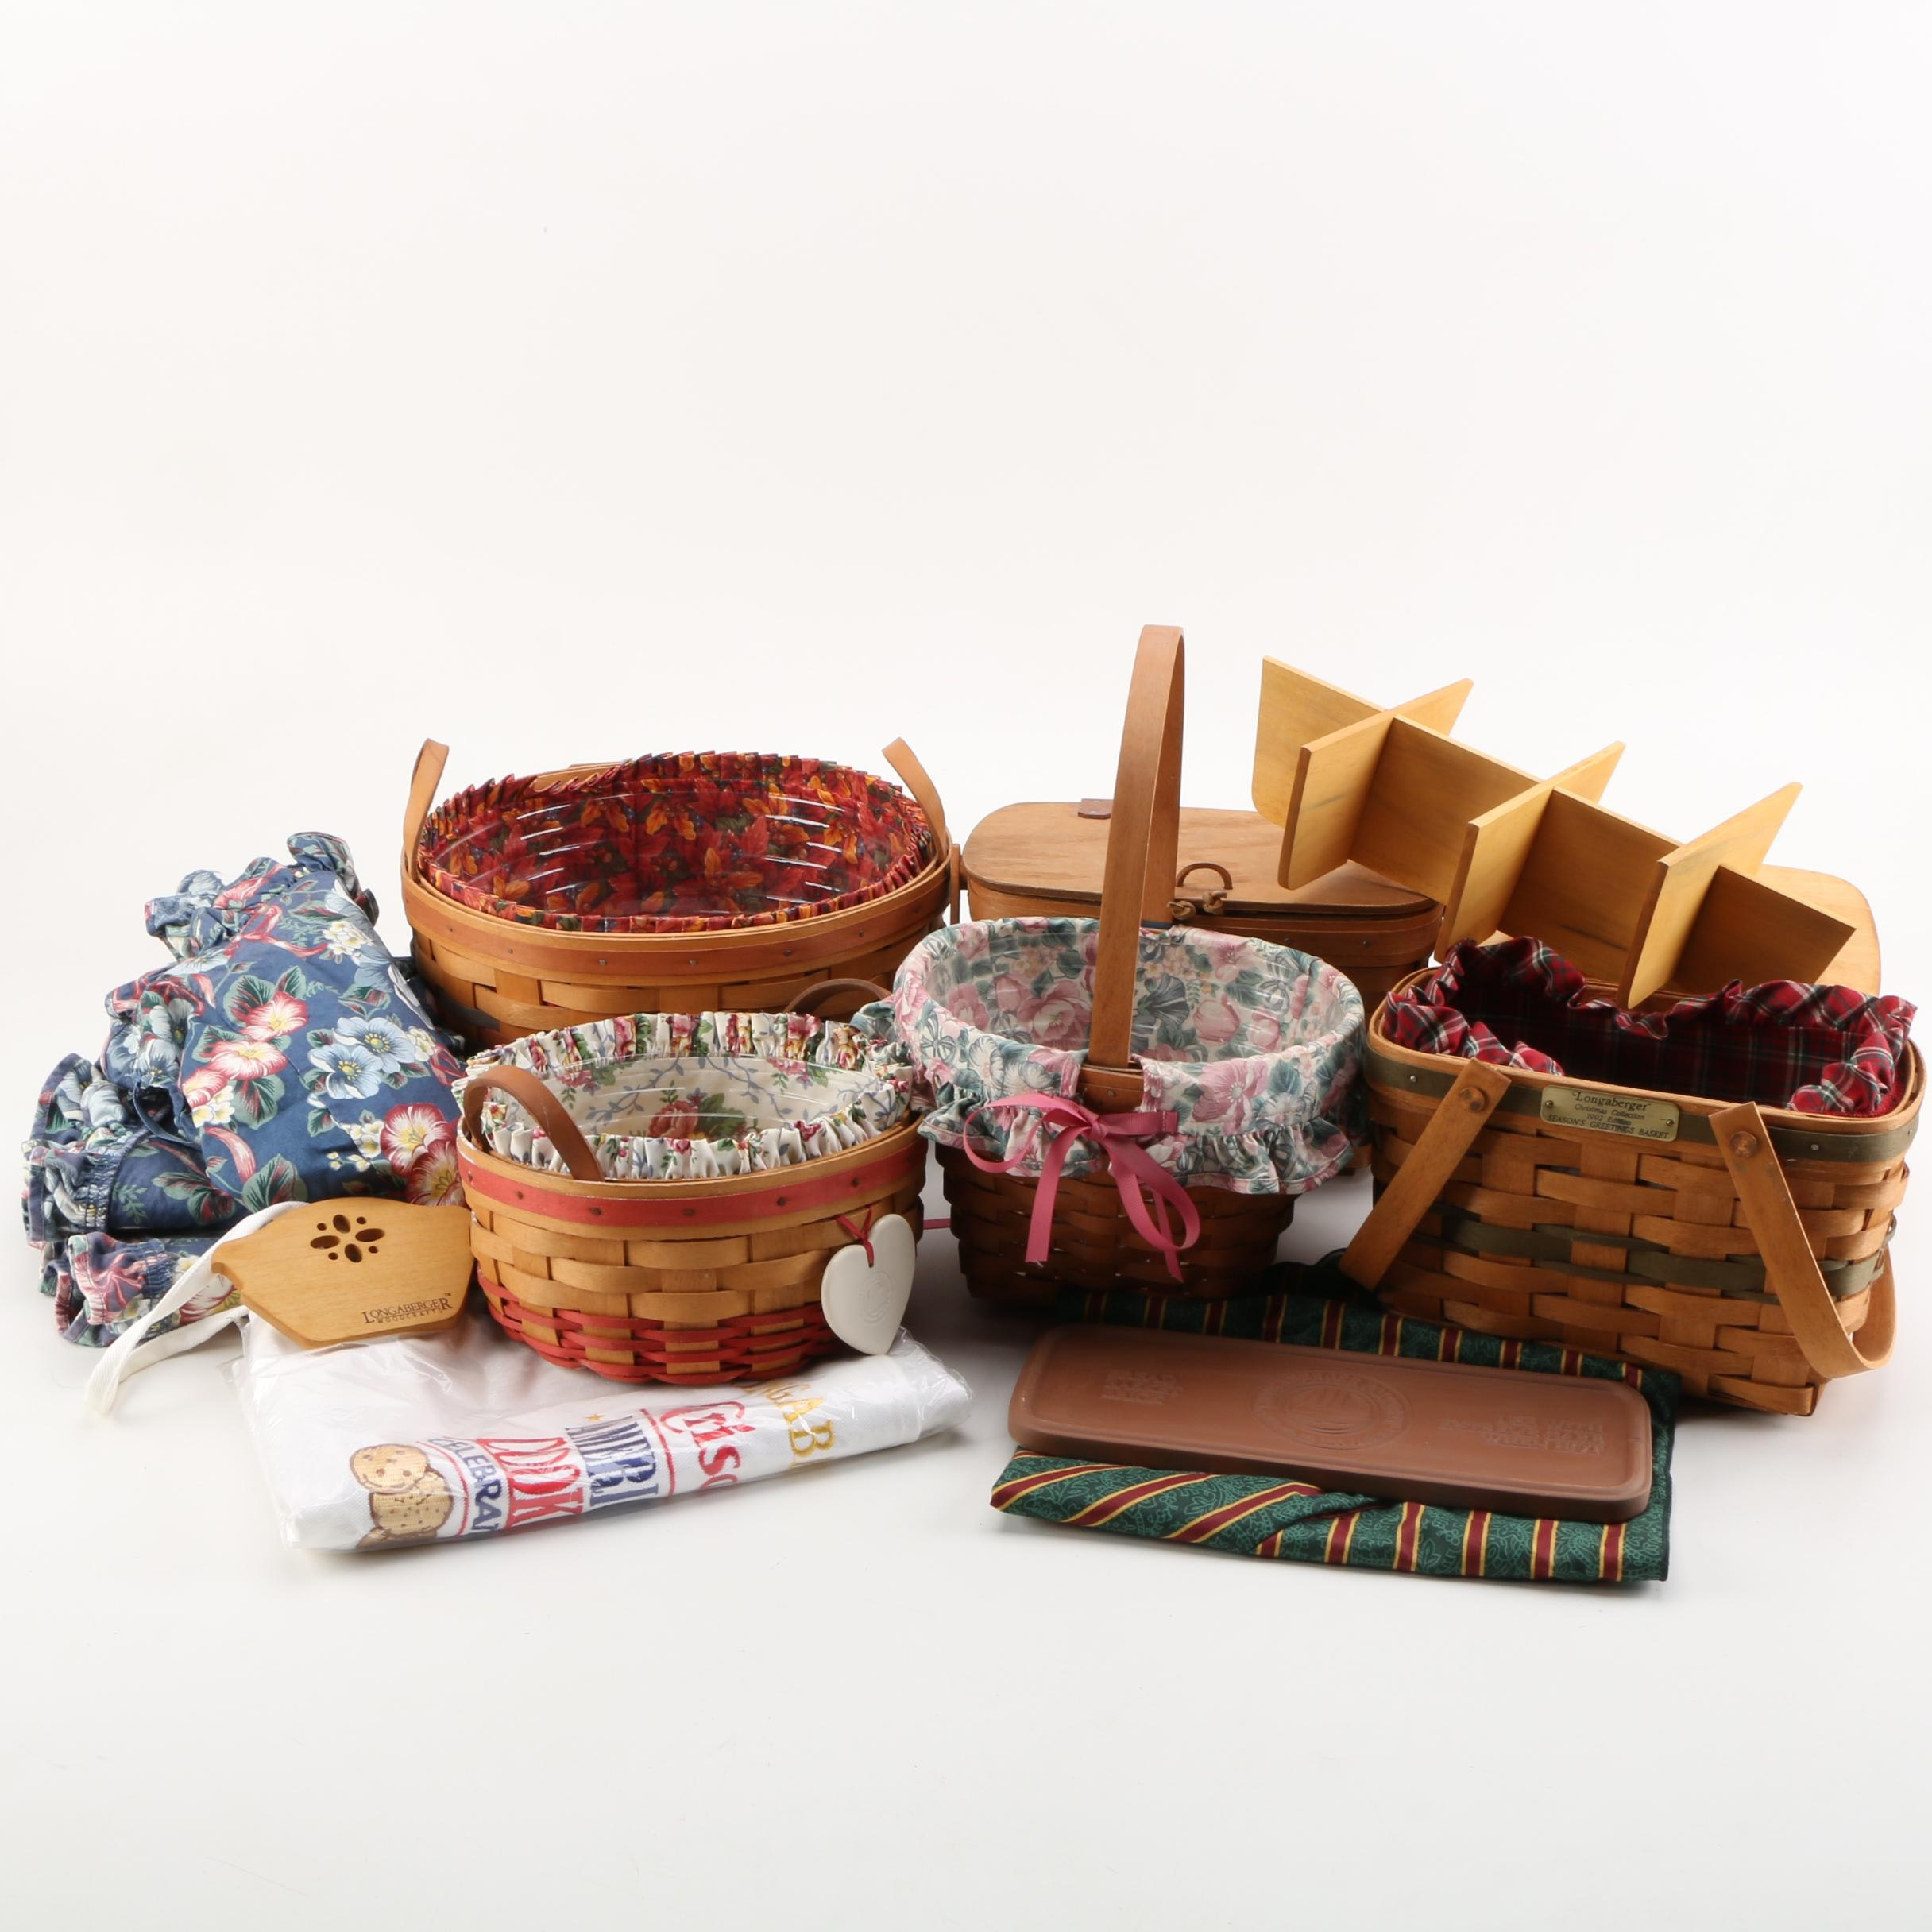 Assorted Longaberger Handwoven Baskets and More